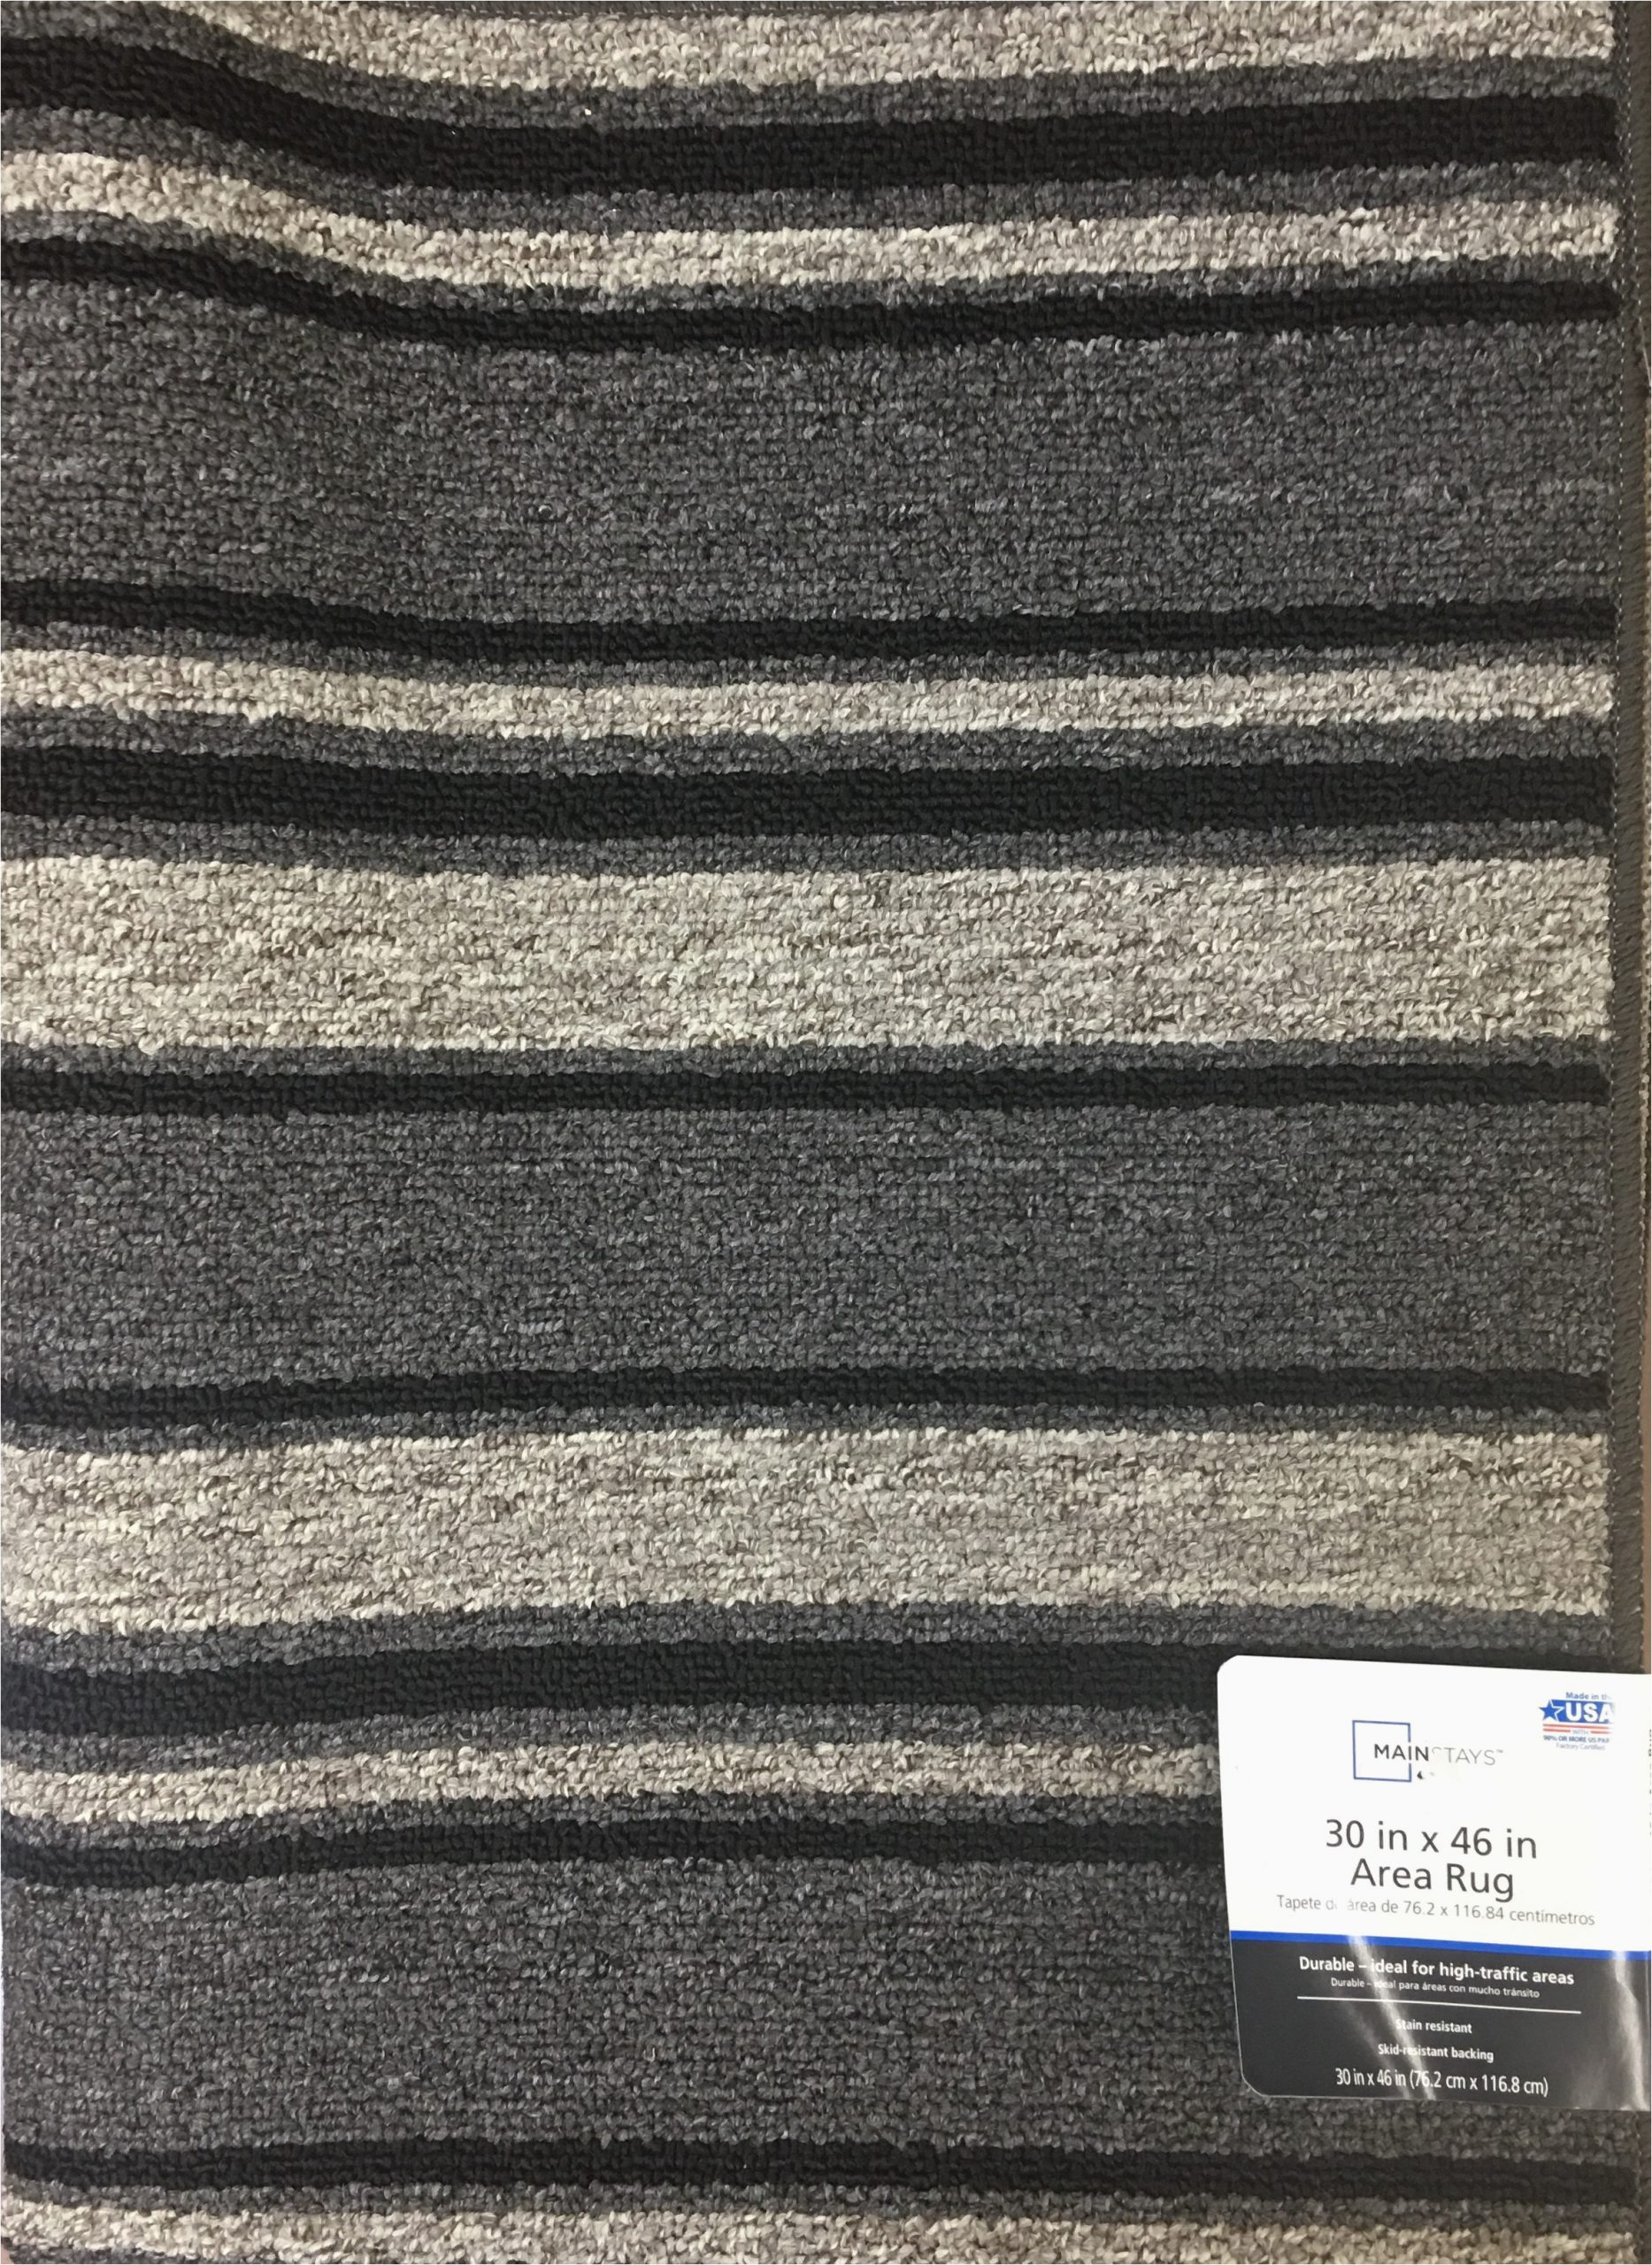 Mainstays Titan area Rug Black Mainstays Ms Titan Black Gry 30×46 Accent Rug Walmart